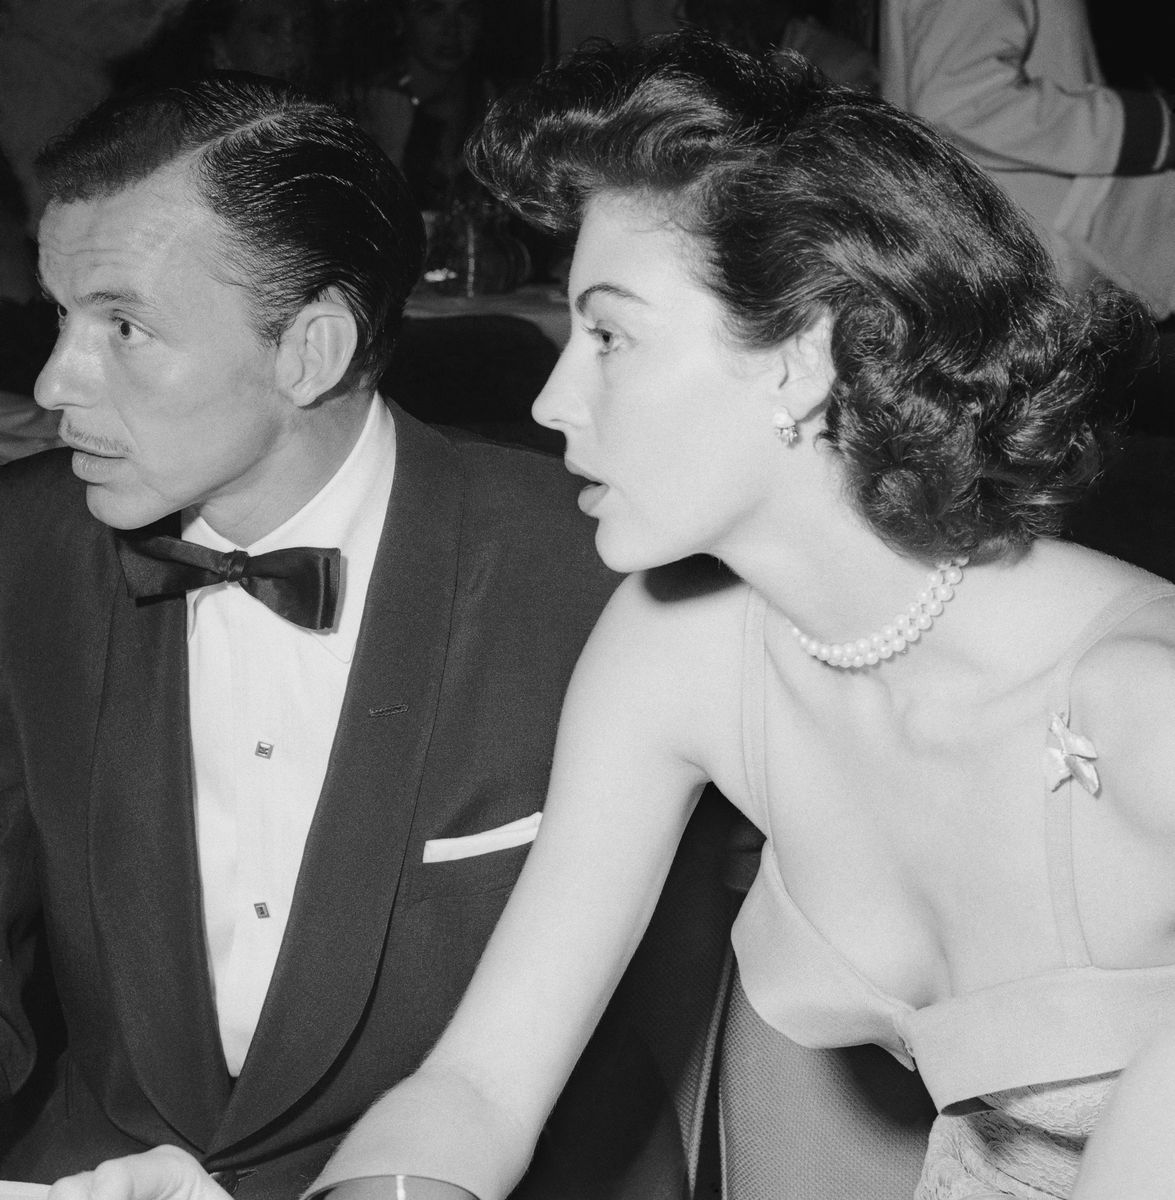 Slide 15 of 50: Frank Sinatra and actress Ava Gardner at the opening of his nightclub in 1951. The couple got married that year.